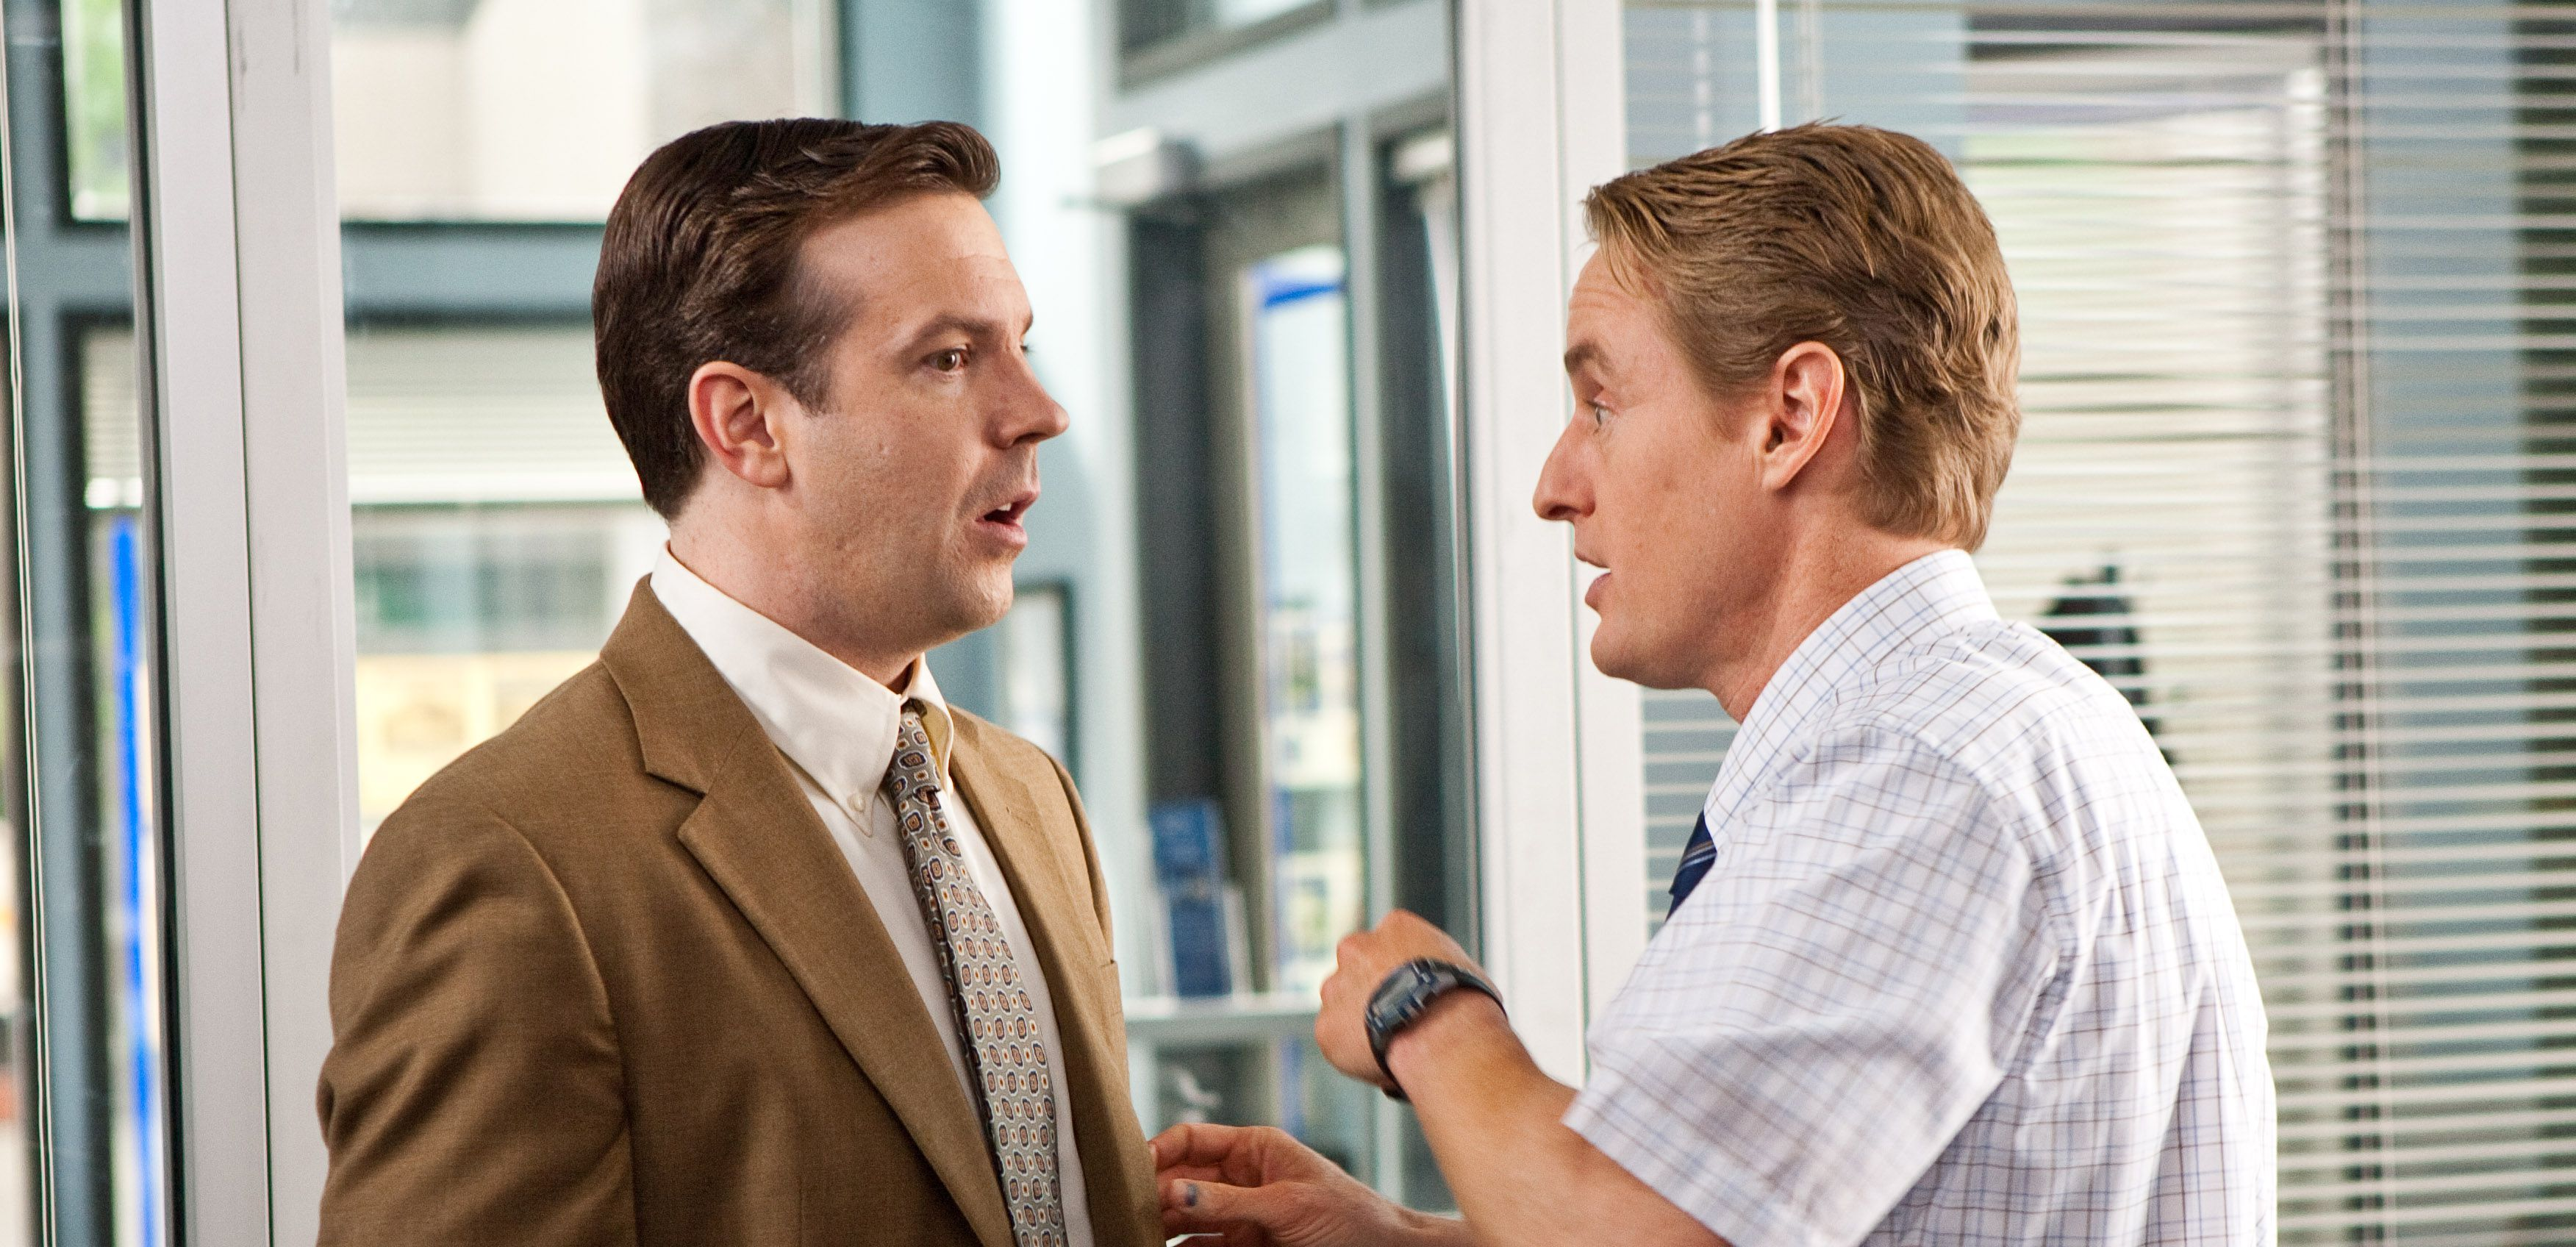 An image from Hall Pass